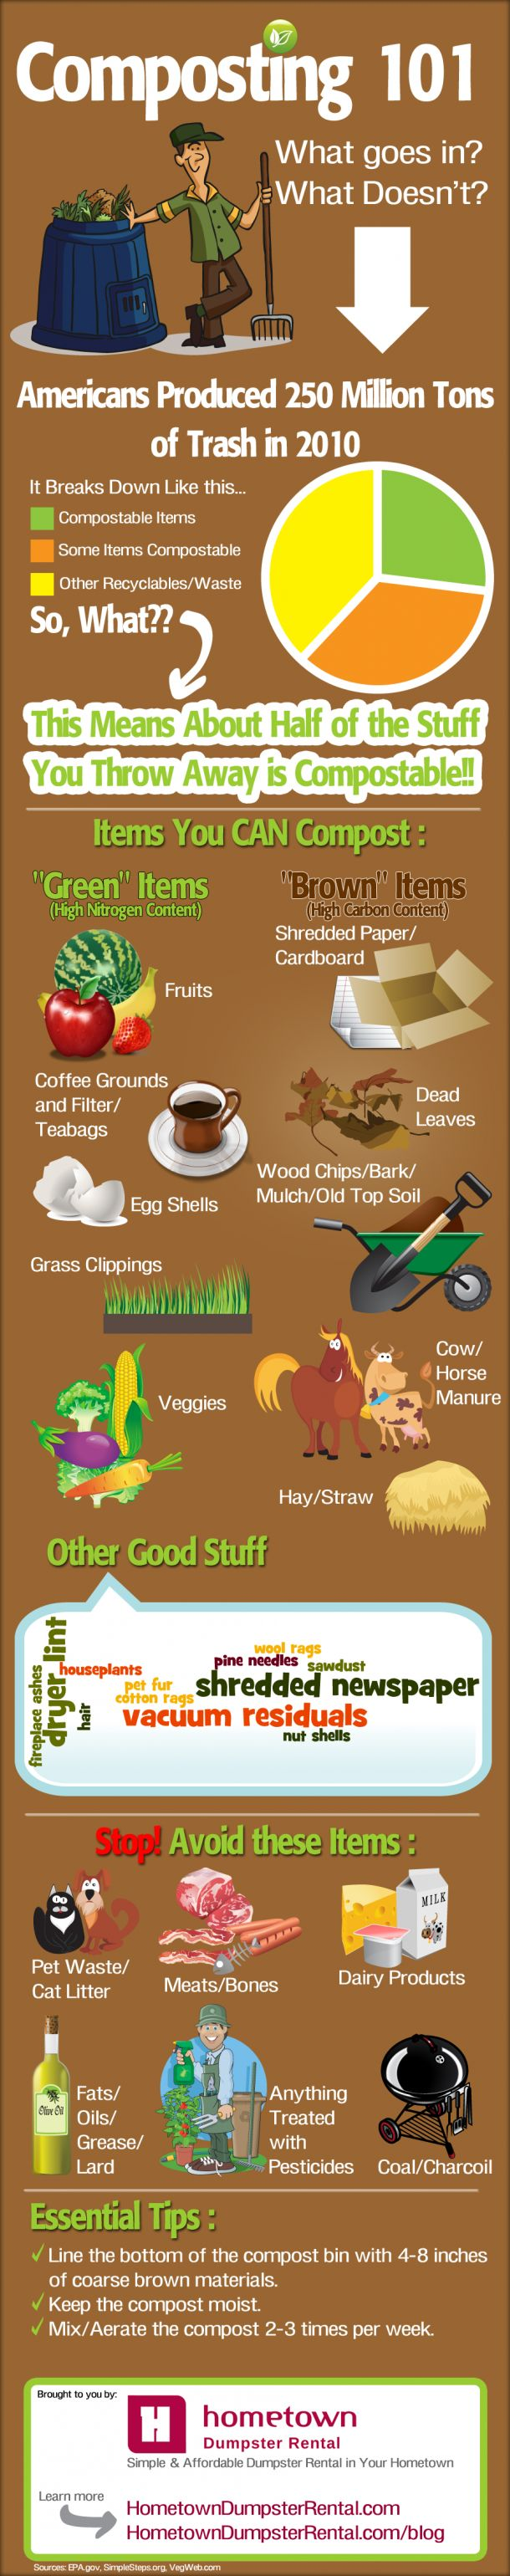 ~ Composting Guide - Garden Idea's & Outdoor Area's ~